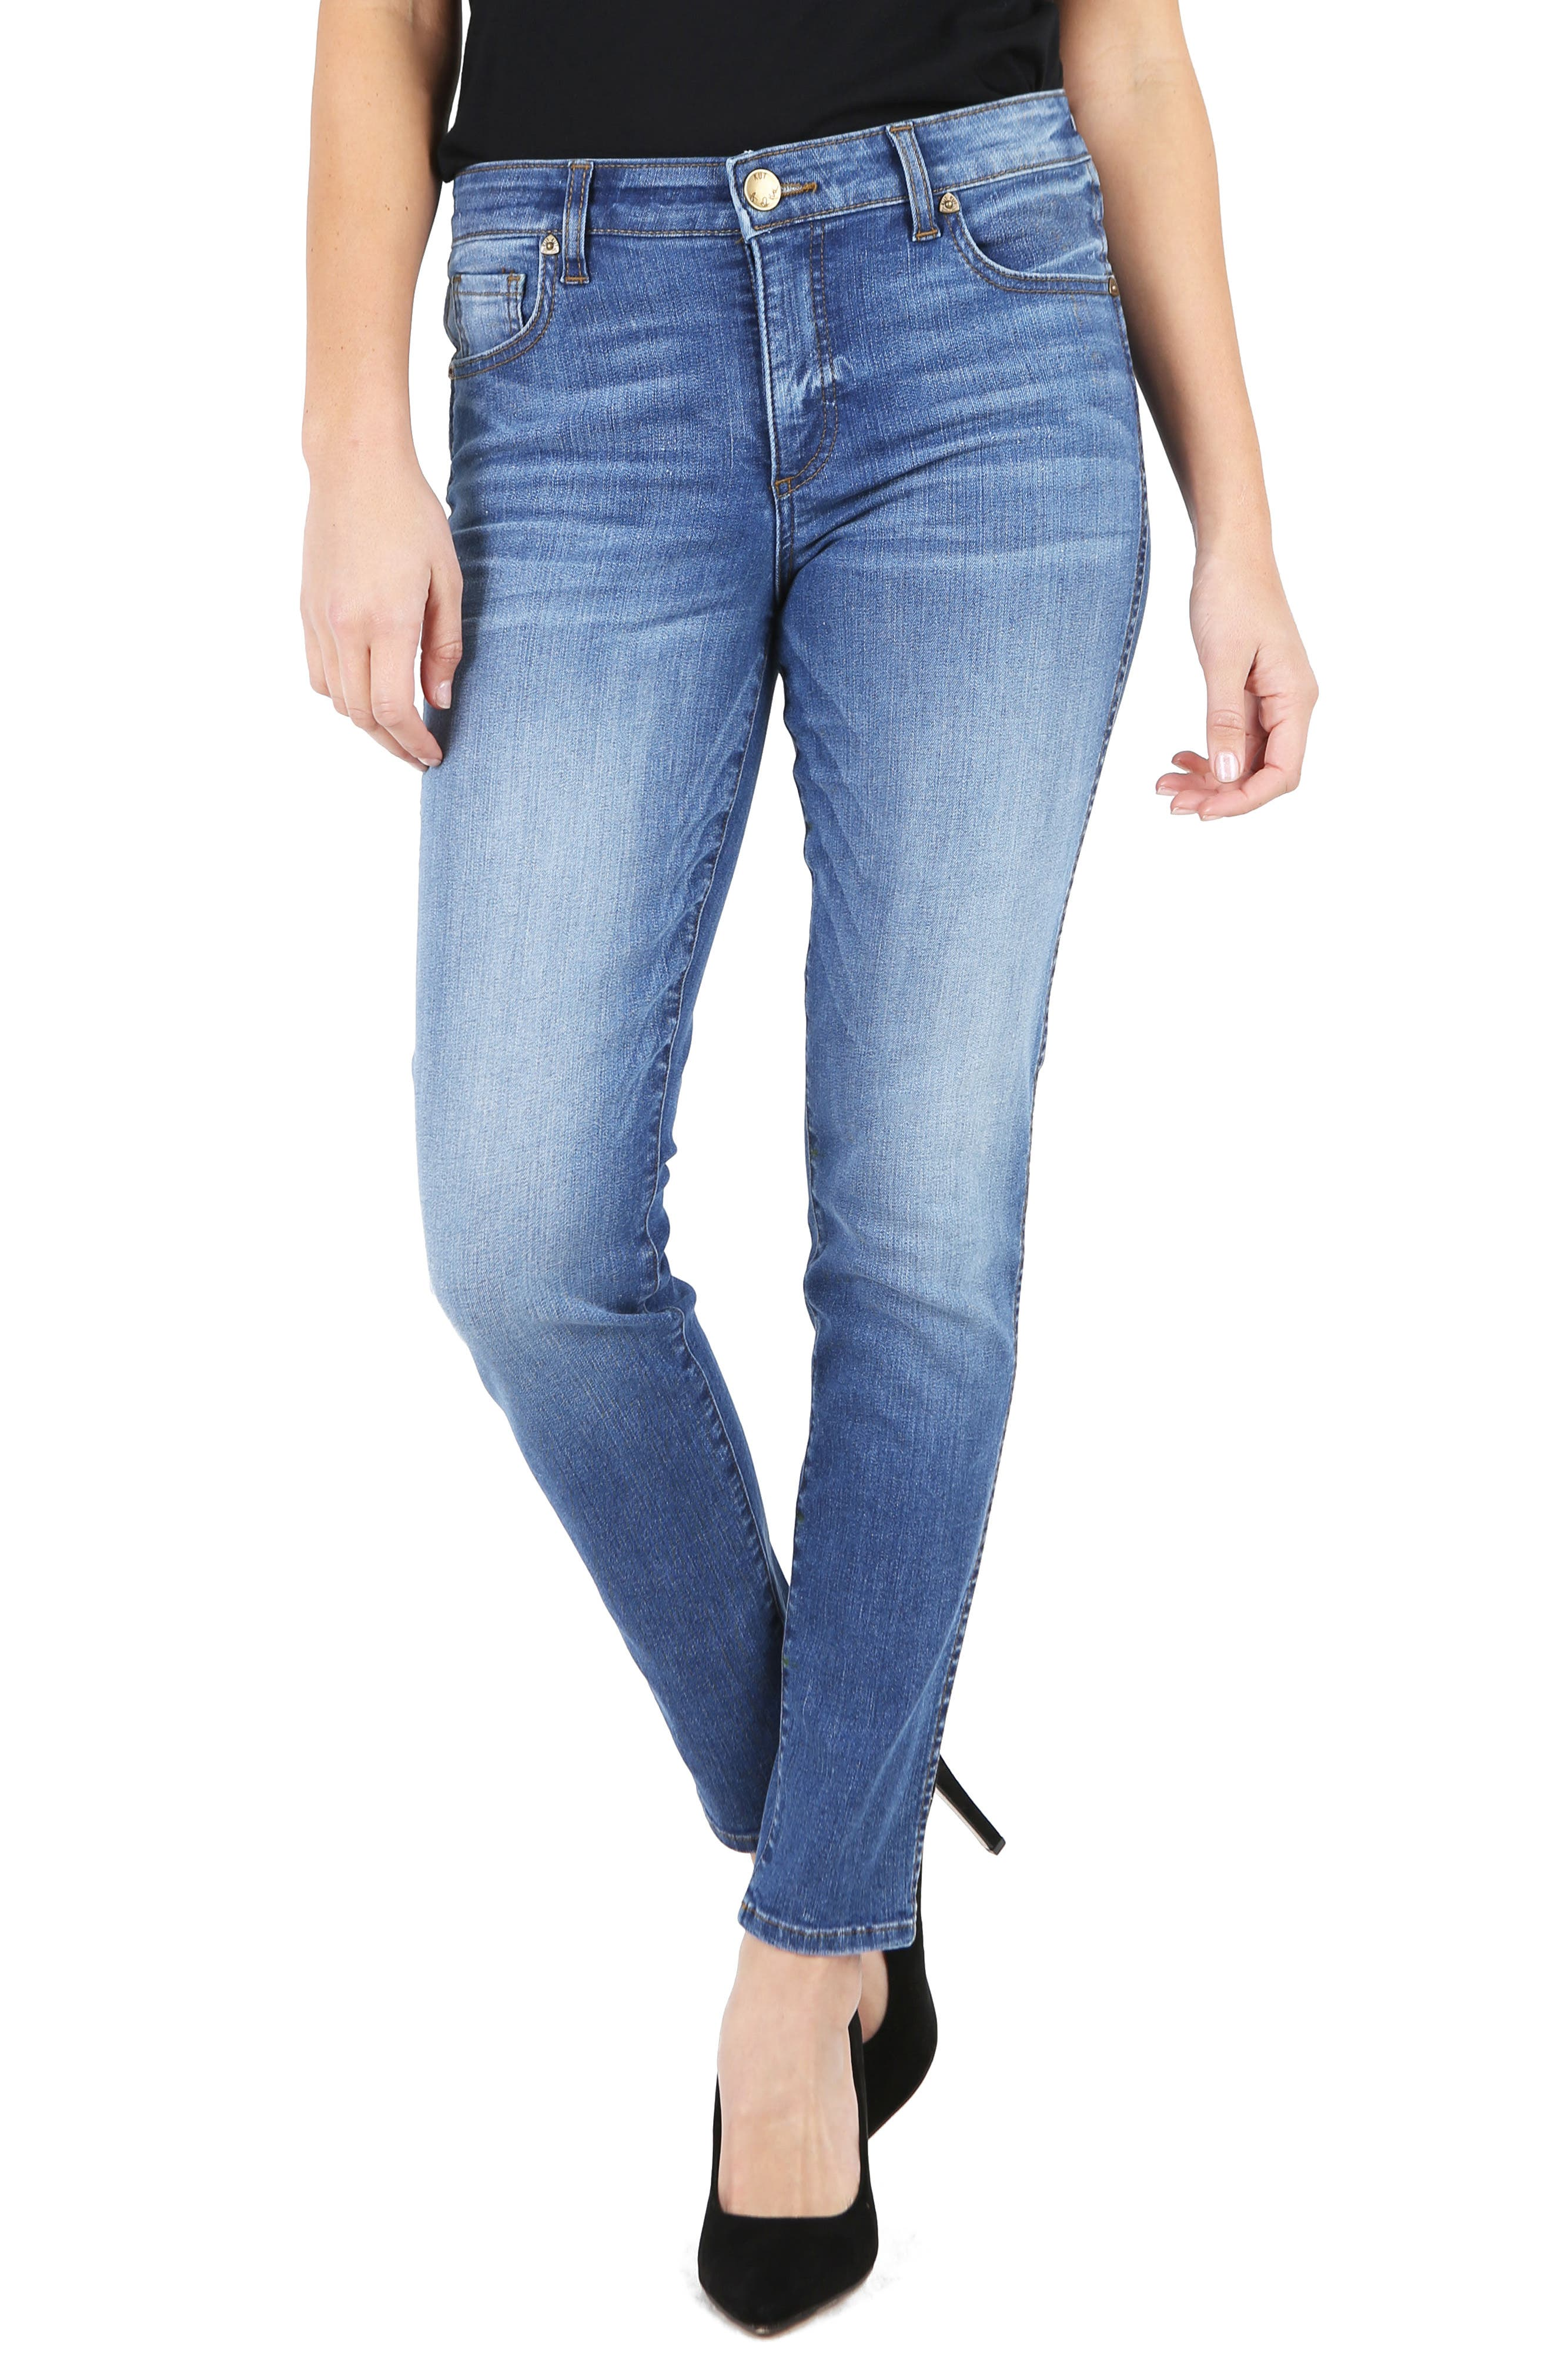 Image of Swat Fame Diana Fab Ab Fit Solution Skinny Jeans